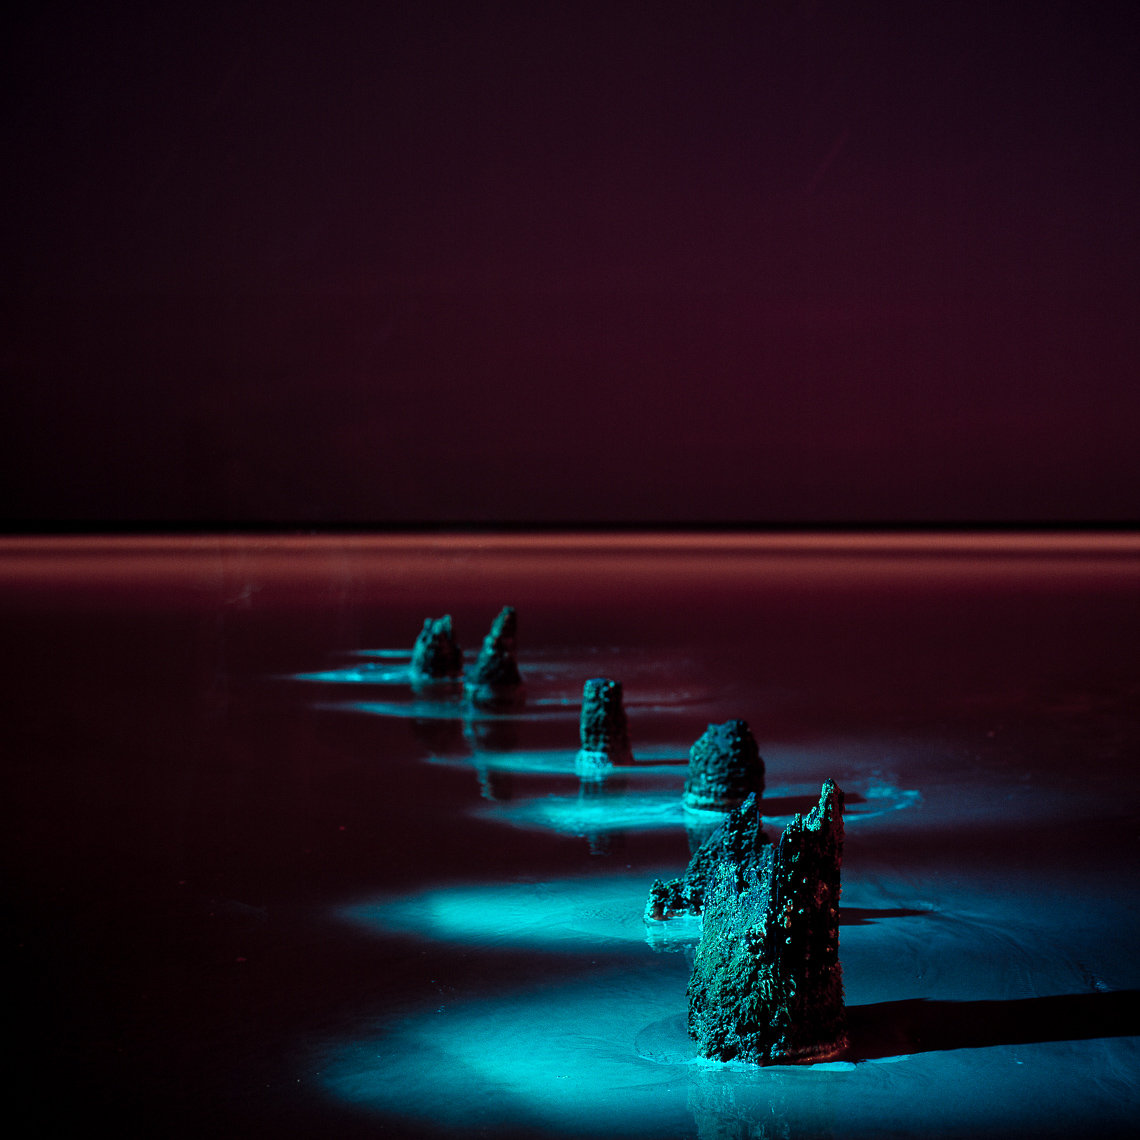 Light painted structures in the water at night